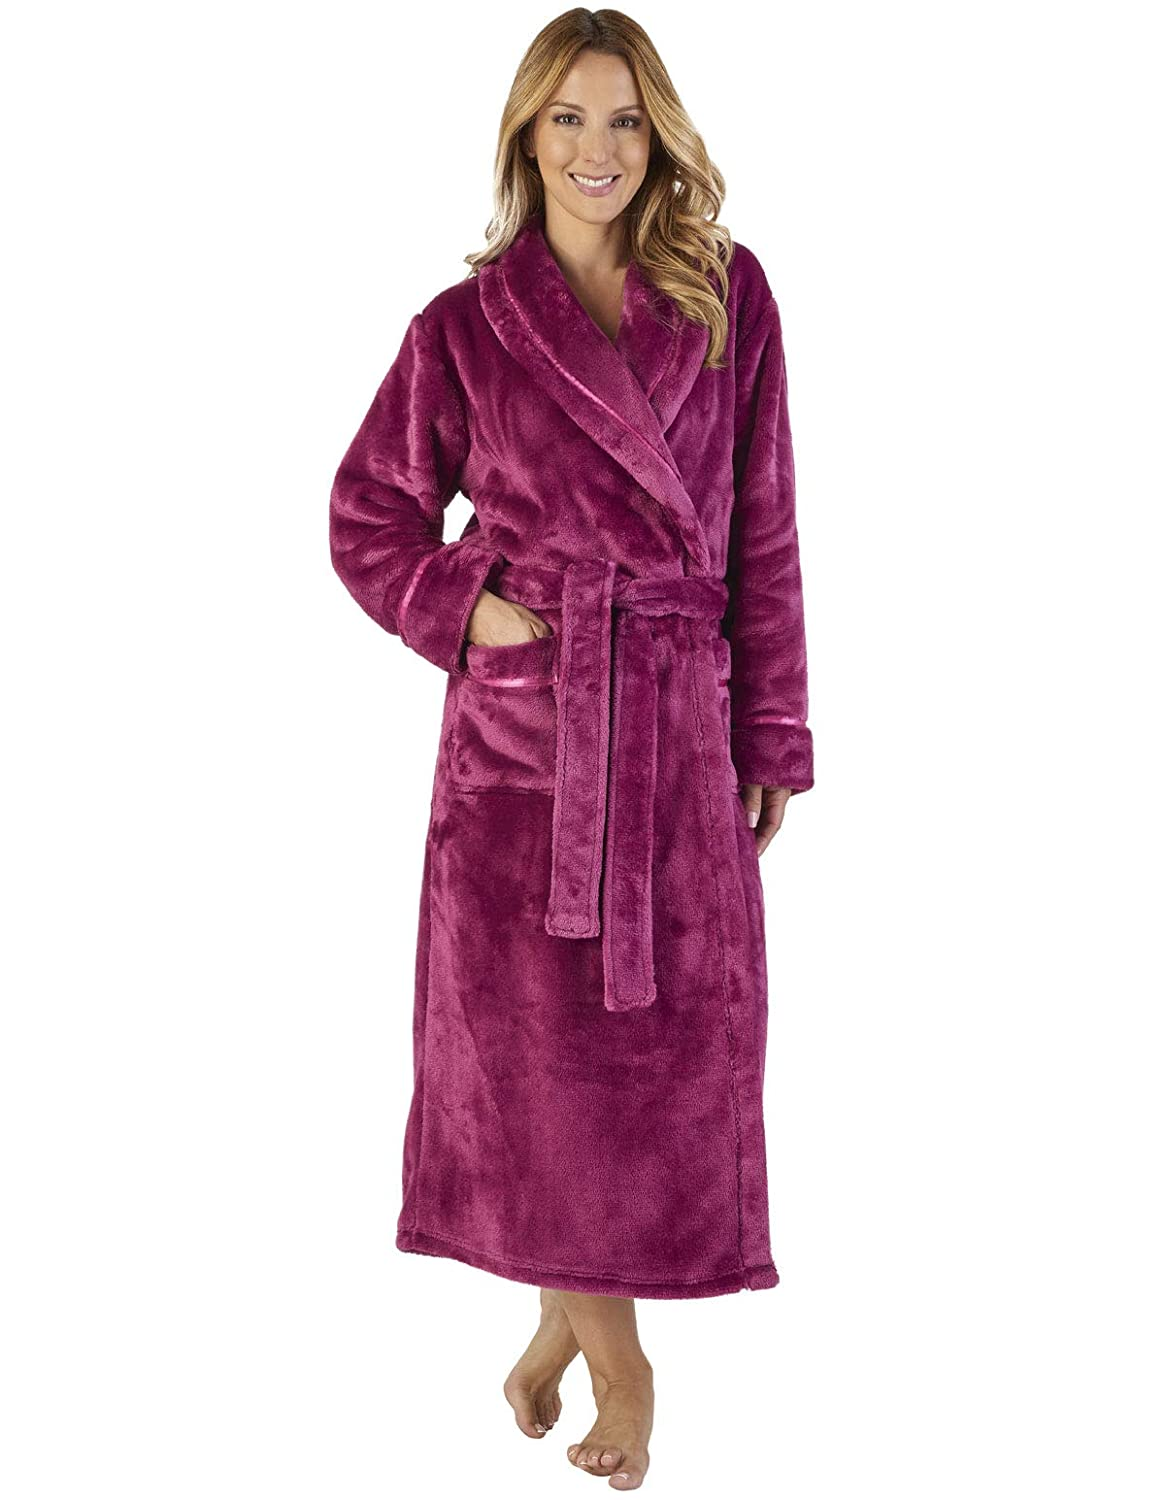 TALLA L. Slenderella HC2347 Women's Luxury Fleece Robe Loungewear Bath Dressing Gown